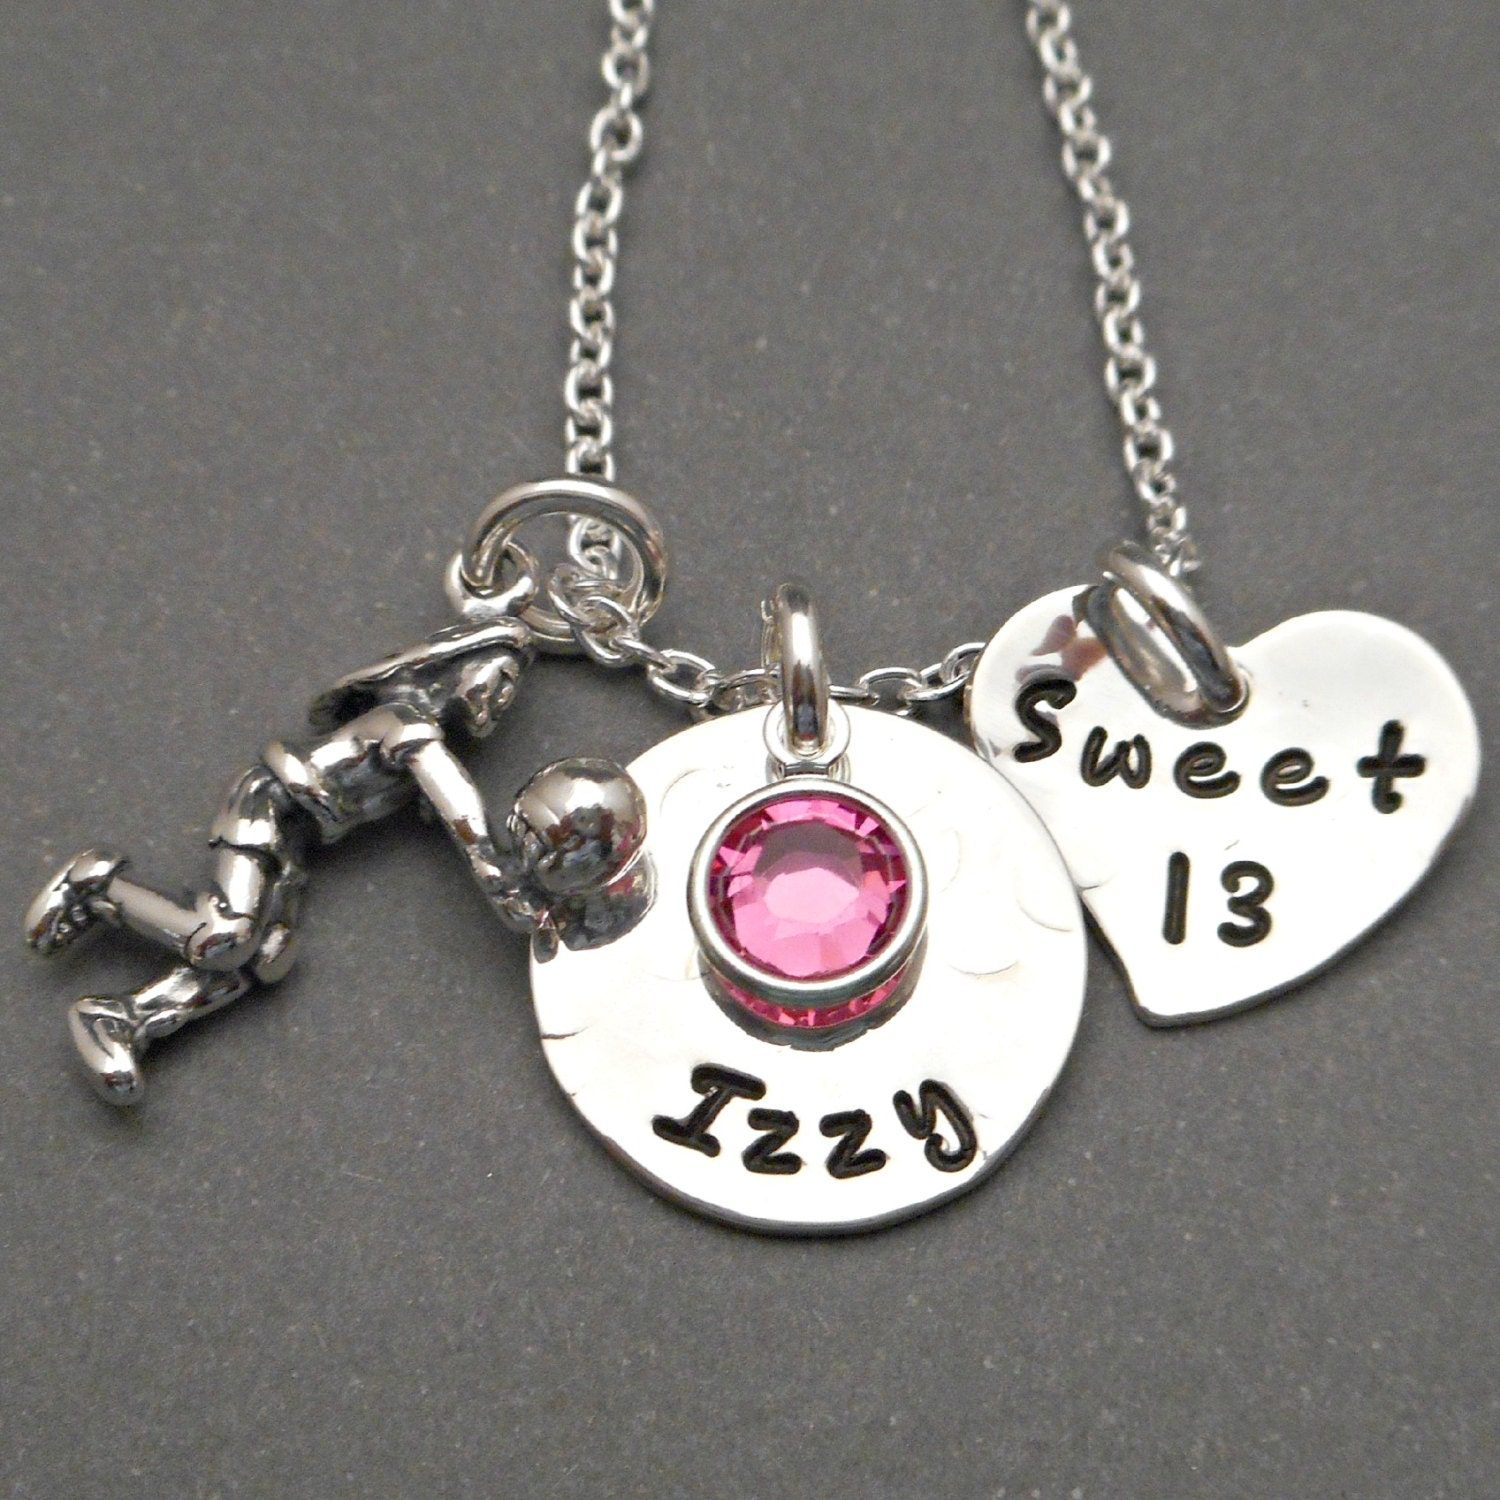 Sweet 13 Necklace Sweet 13 Jewelry 13th Birthday Girl